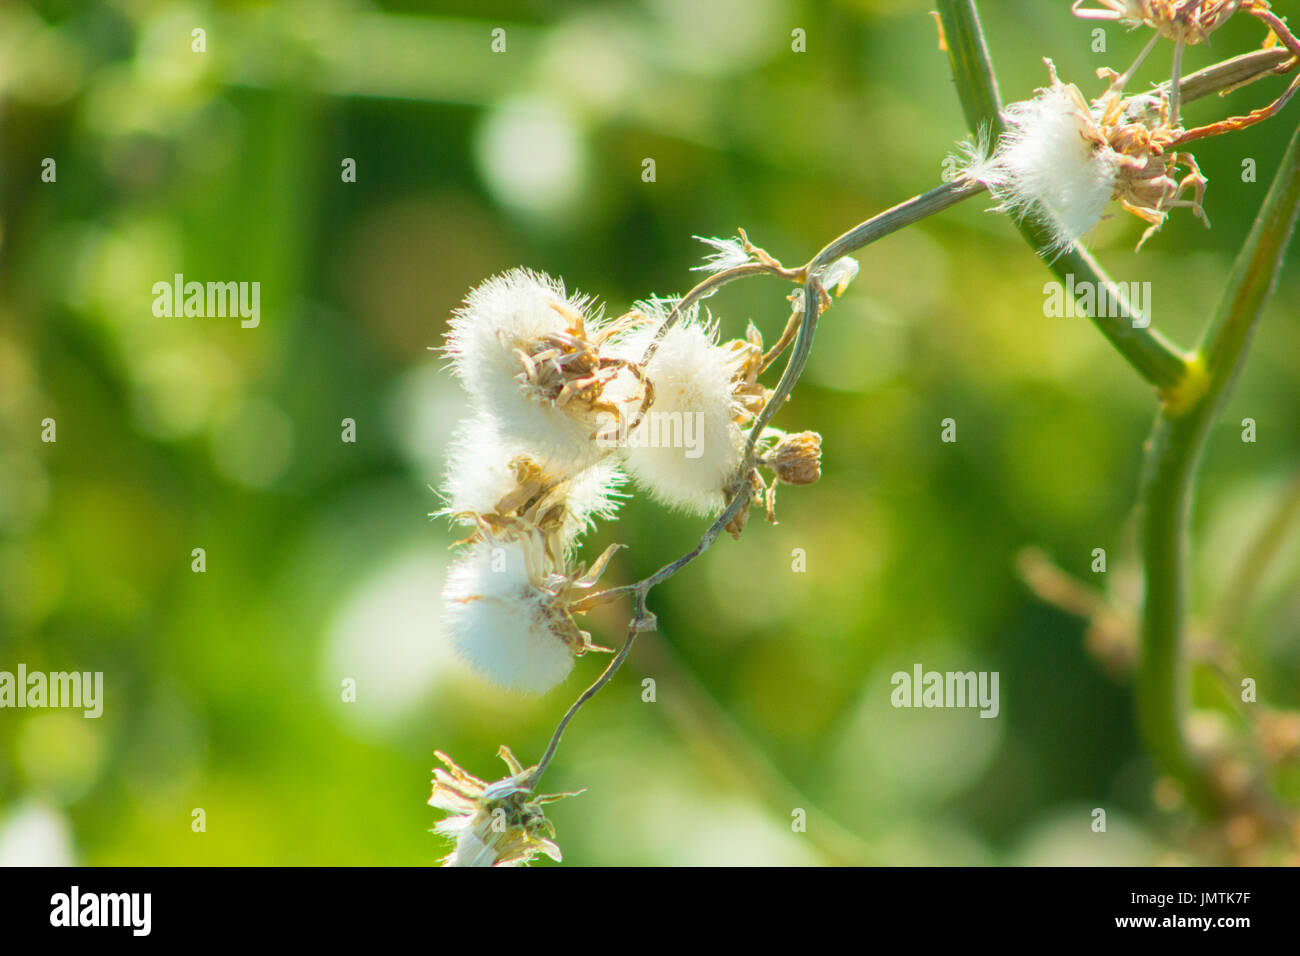 Beautiful Spring Flowers Blooming Under The Sun Different Types Of